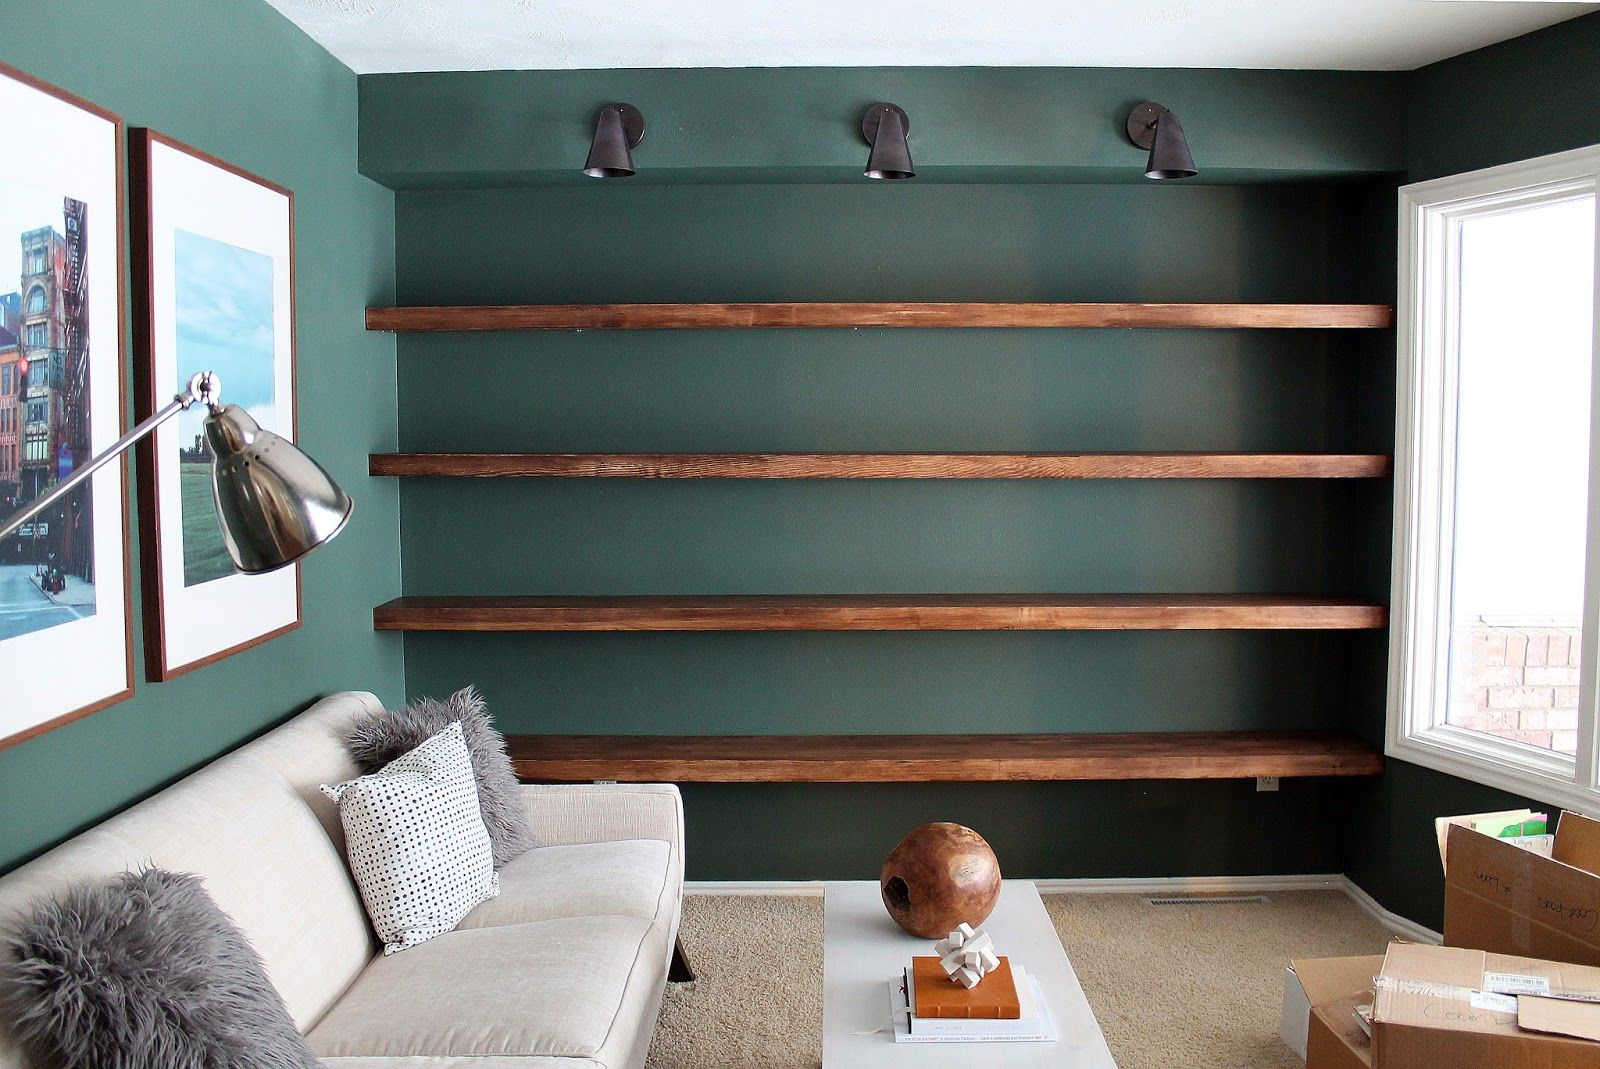 Diy solid wood wall to wall shelves wood walls solid wood and diy solid wood wall to wall shelves living room amipublicfo Image collections